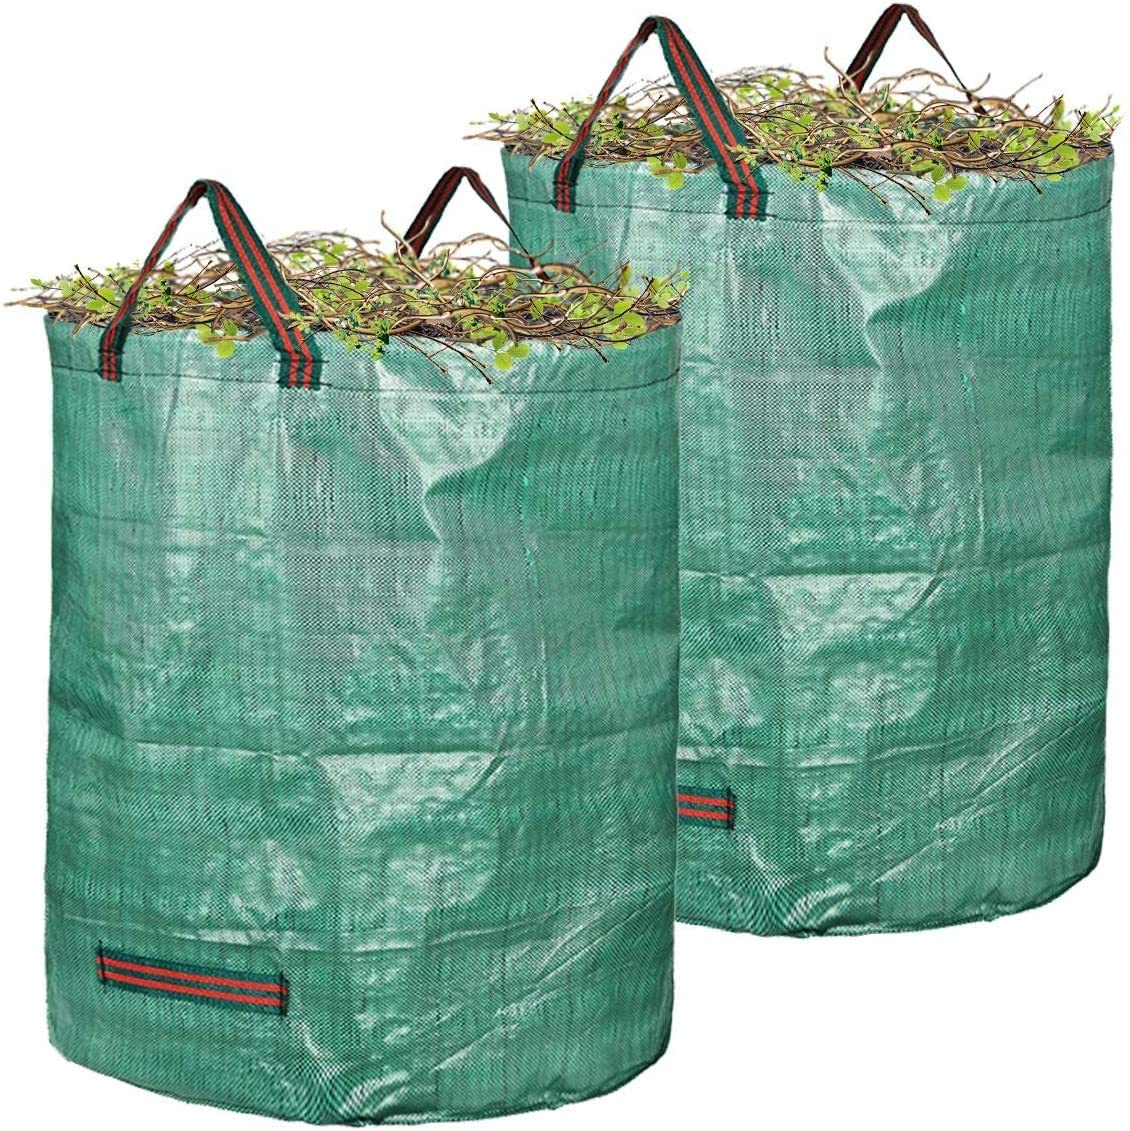 2-Pack Reusable Garden Waste Bags Yard Waste Bags Leaf Waste Bags Deciduous bag (80 Gallon x 2)